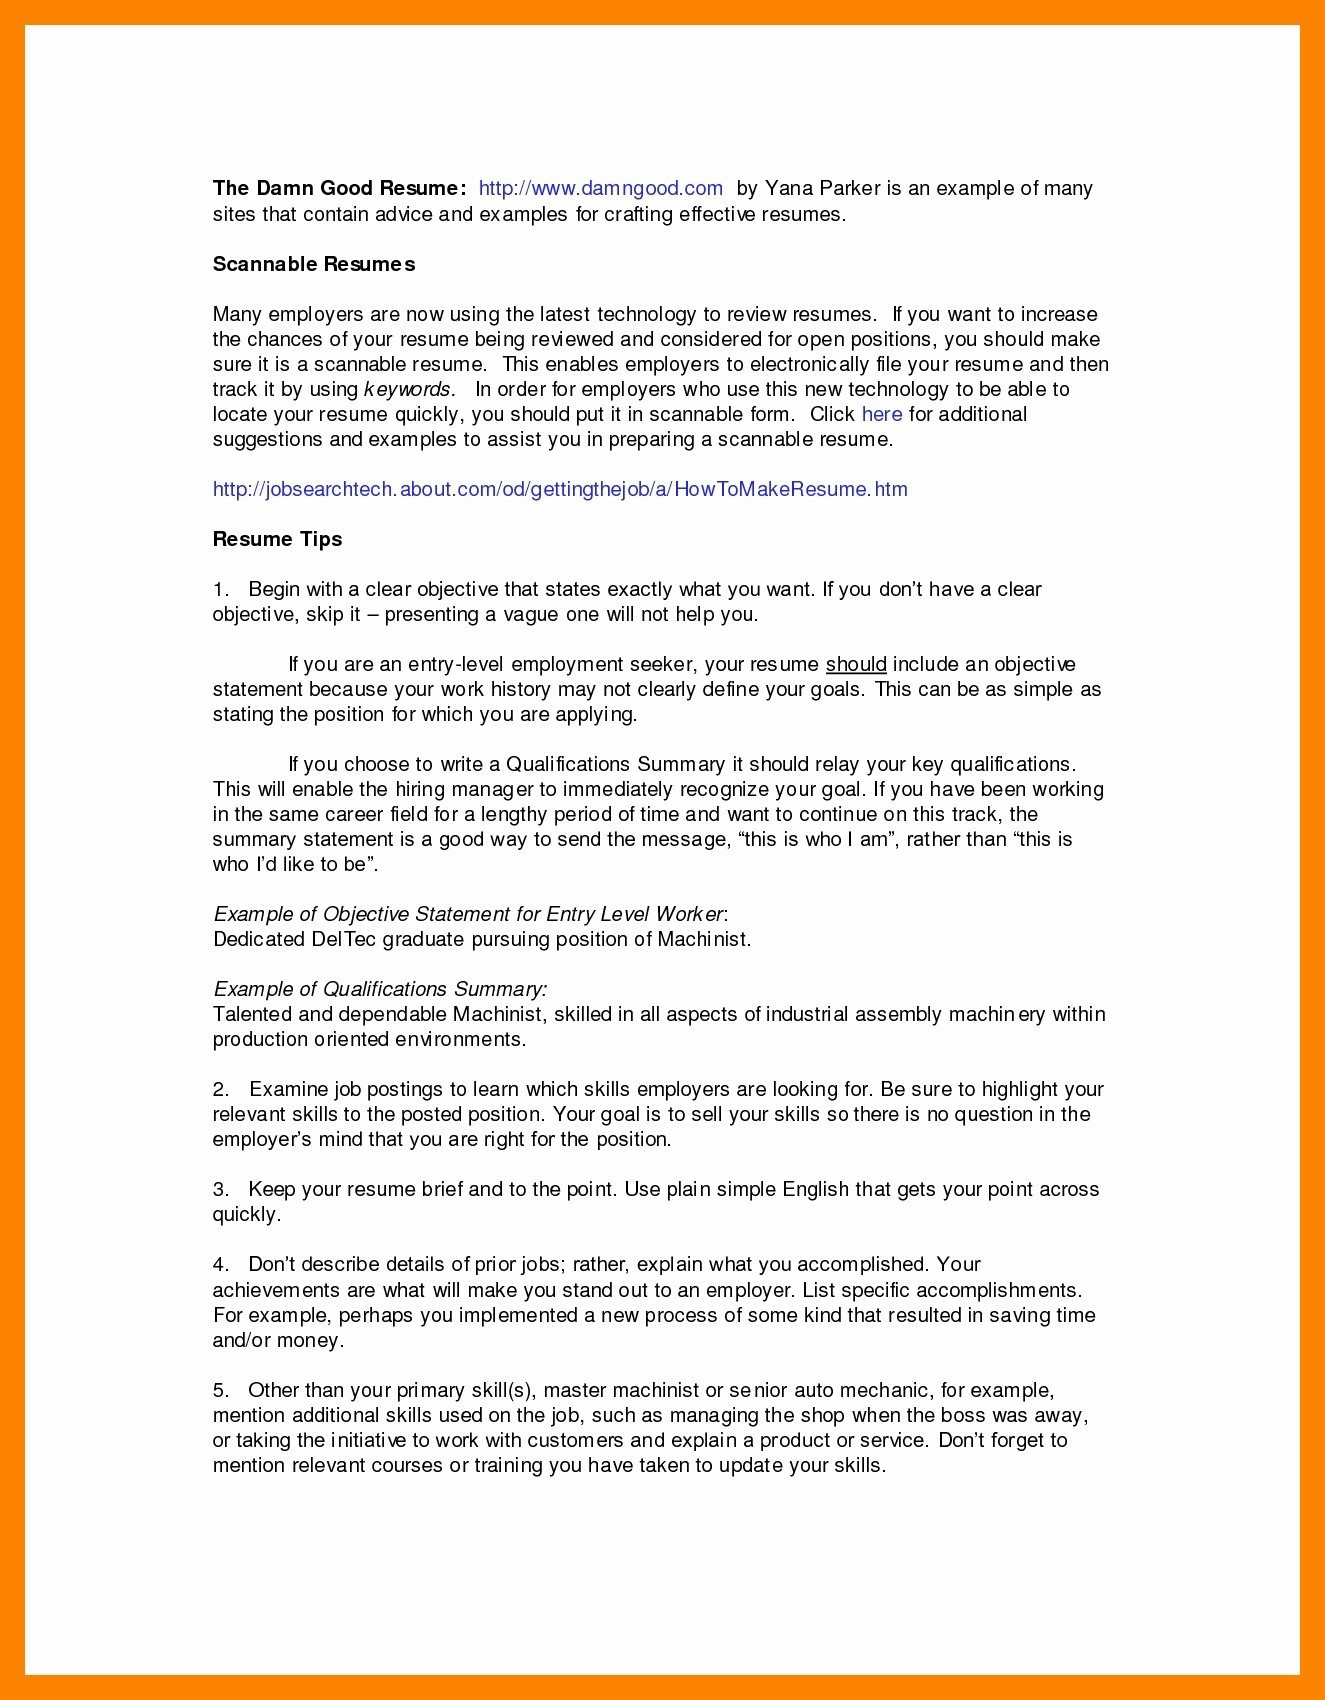 Resume Objective for Career Change Examples - Career Change Resume Temp Valid How to Resume Best Career Transition